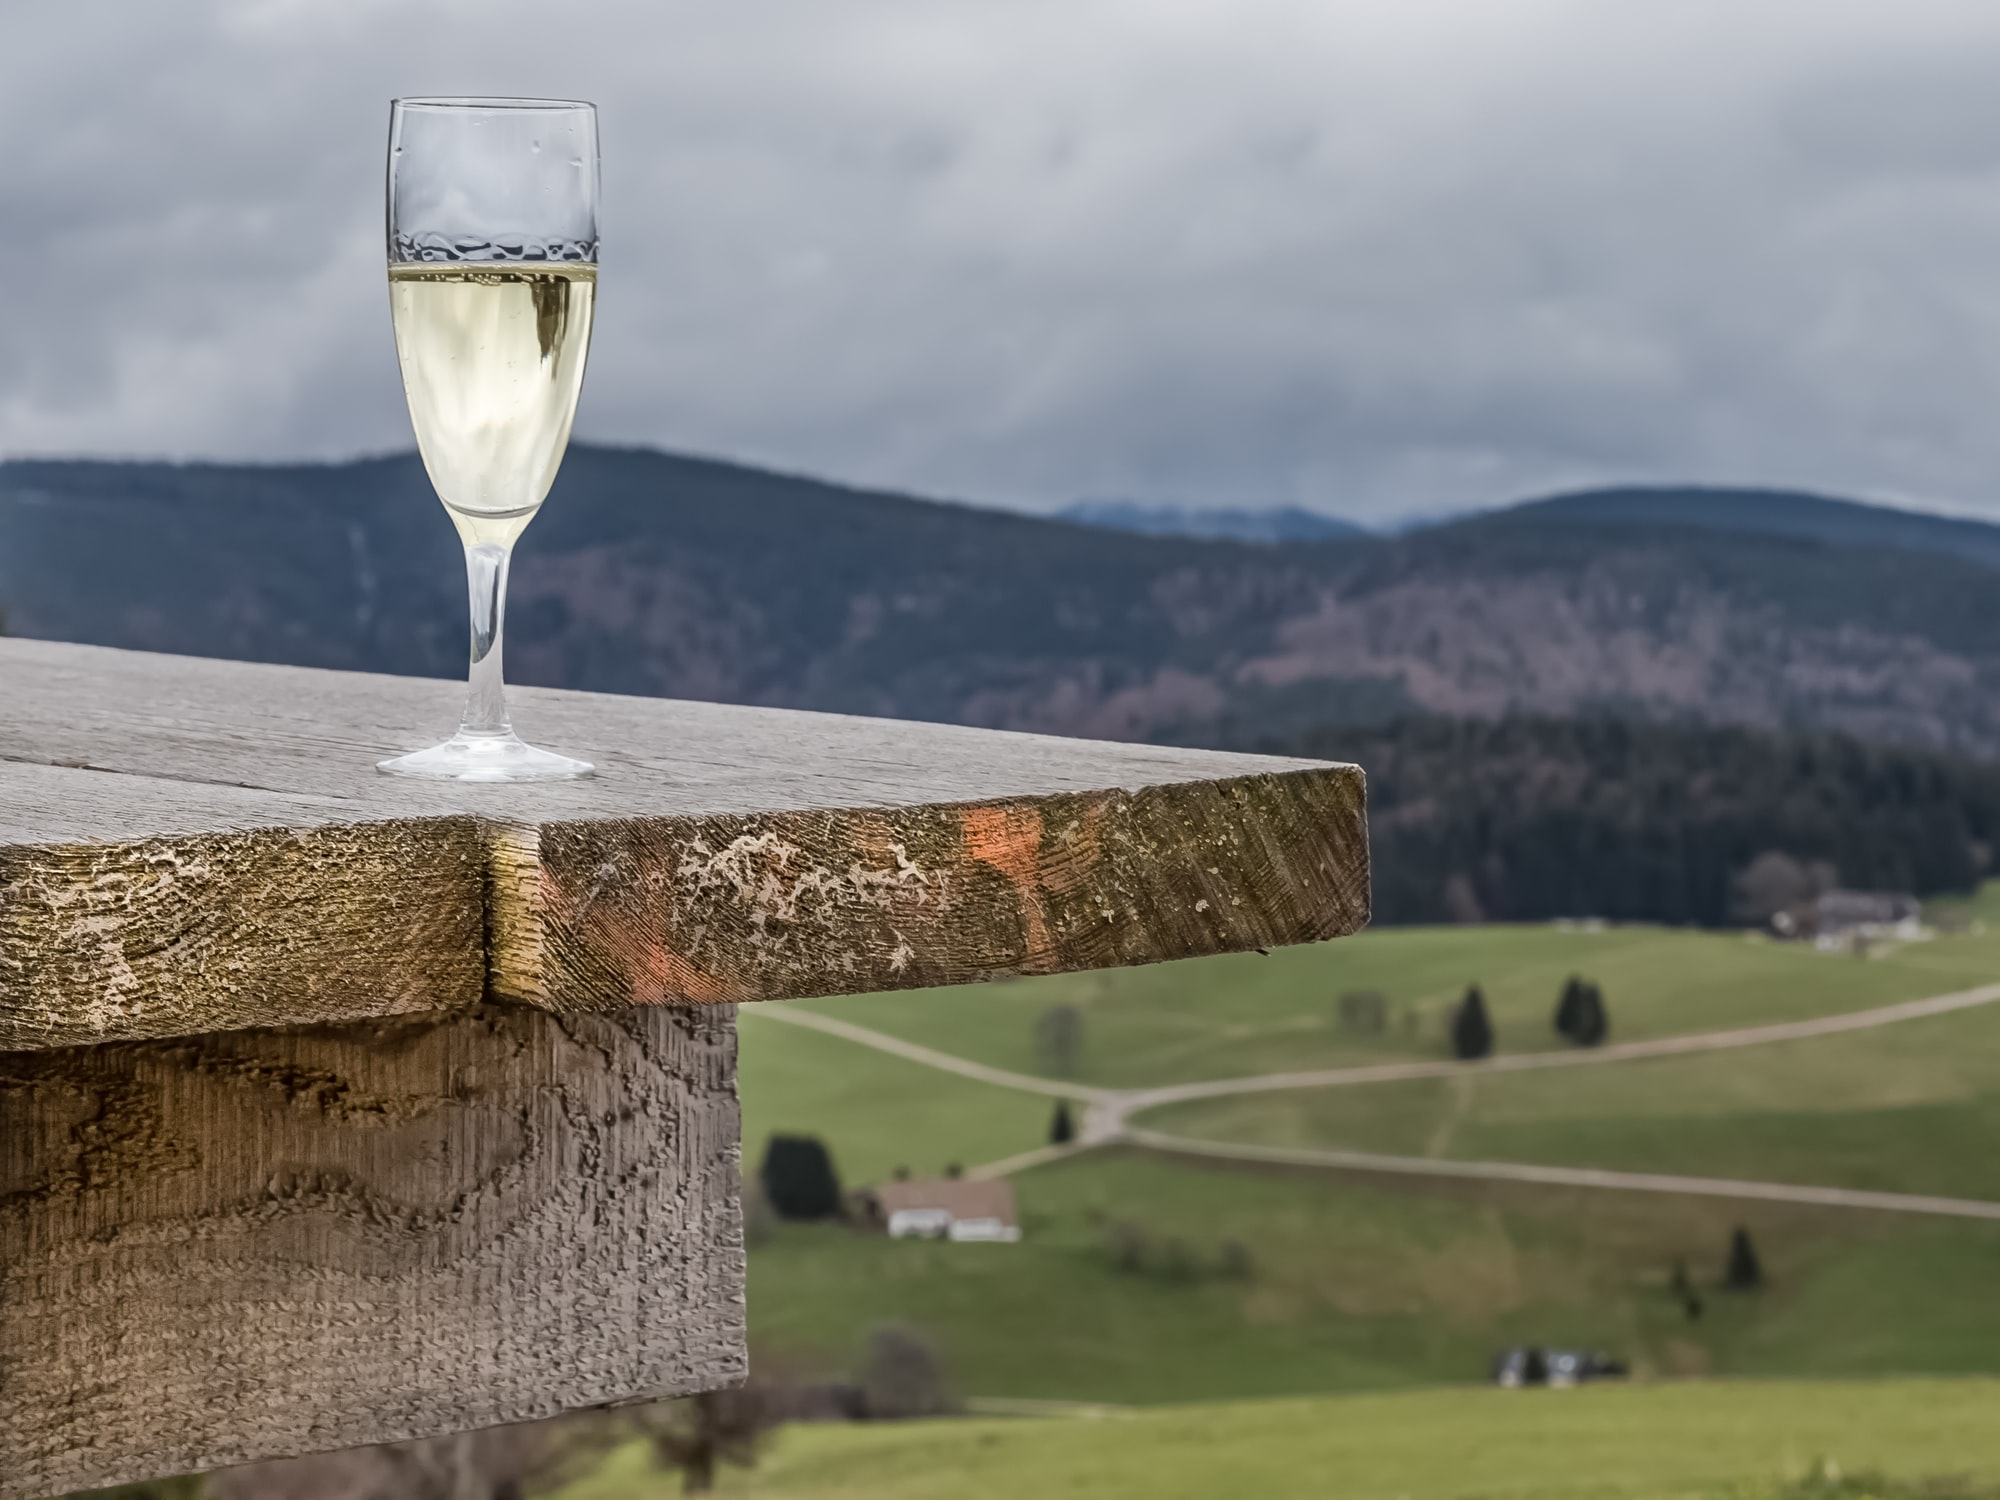 A cold glass of wine stands on a wooden table, outdoors in the European Alps.